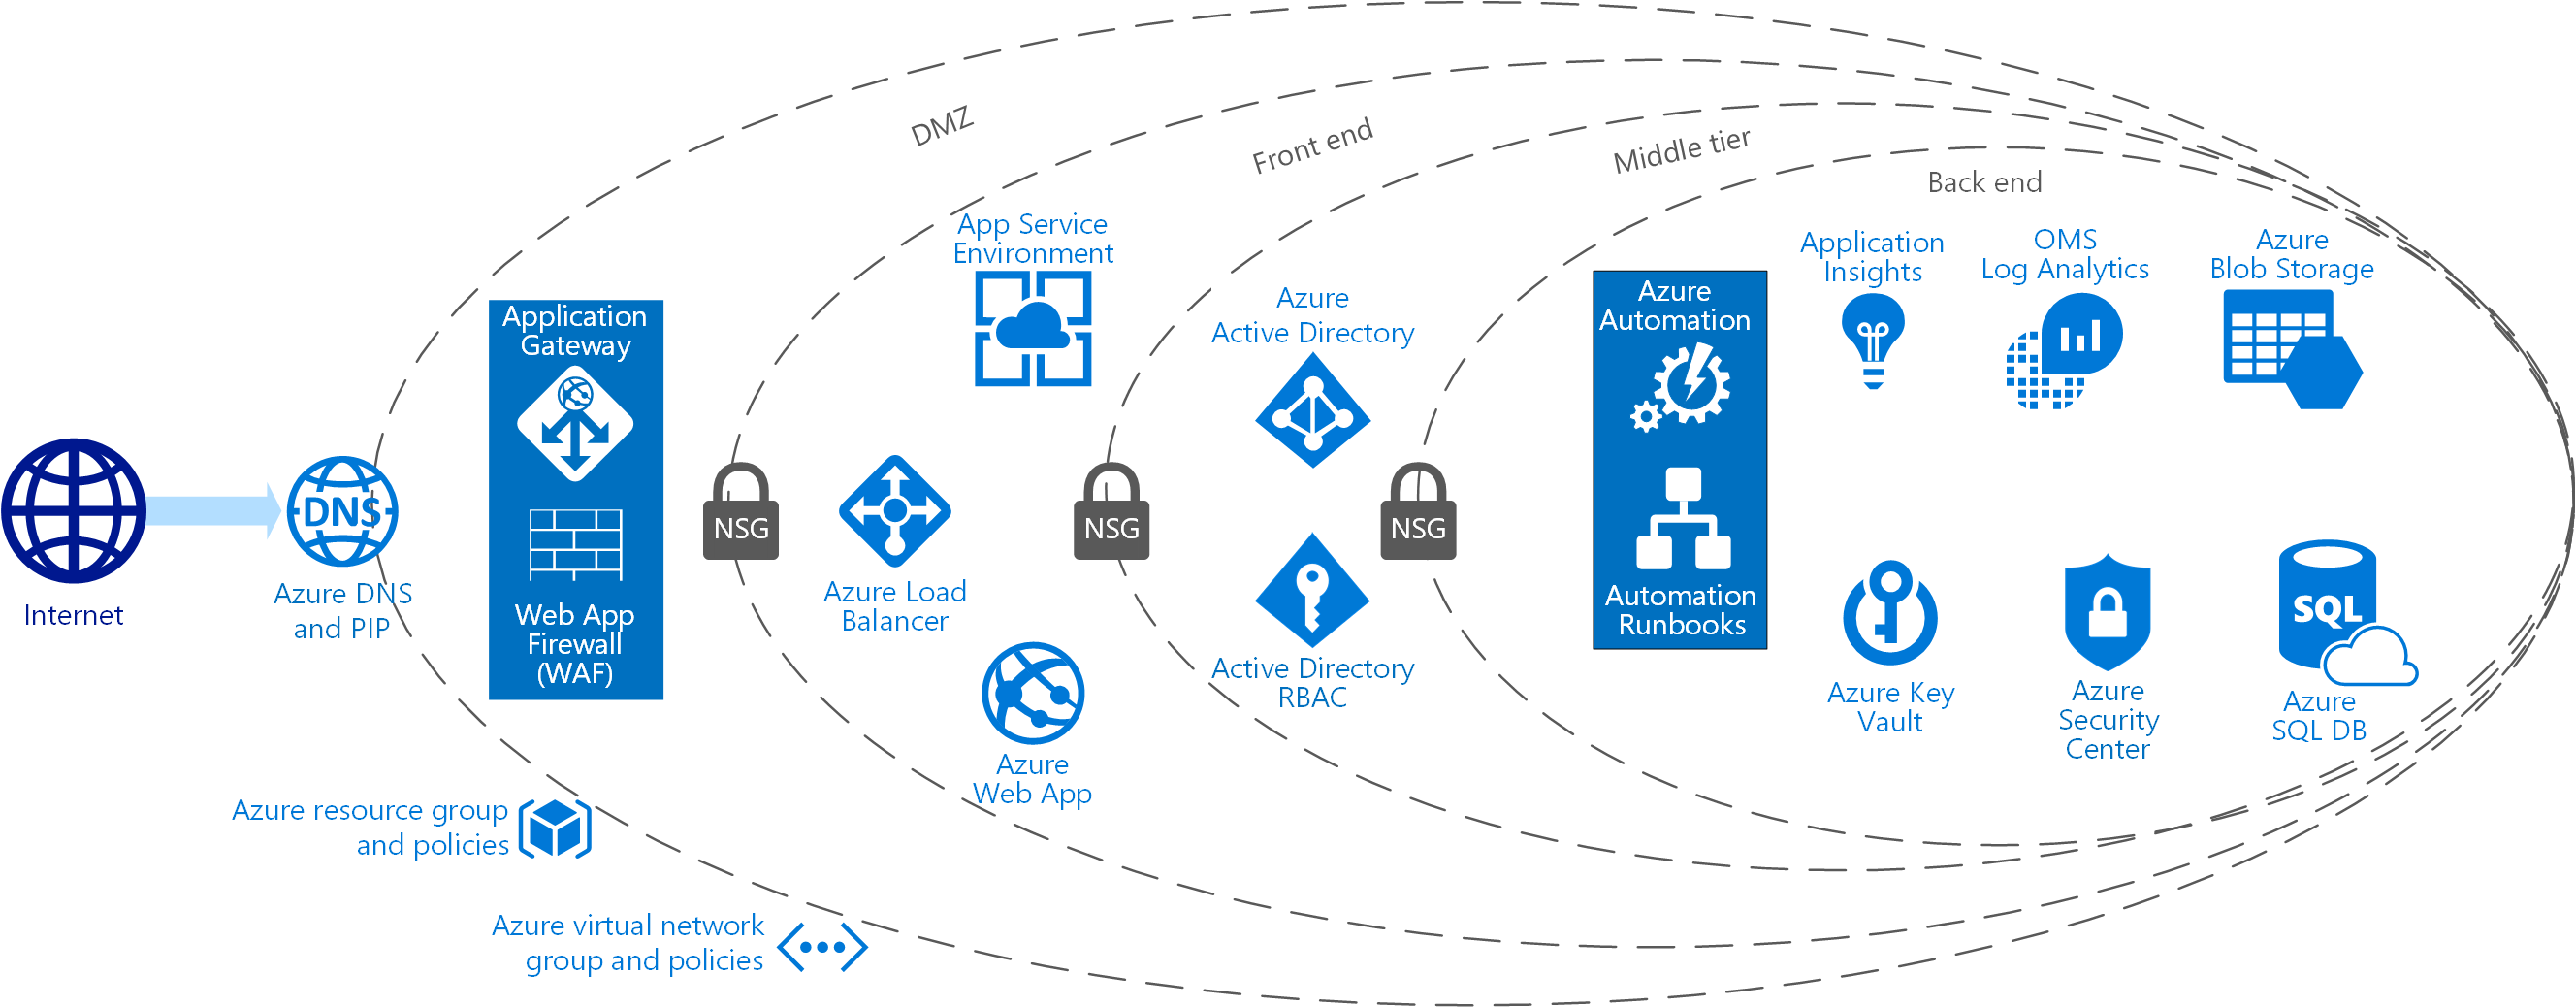 Azure security and compliance blueprint ffiec financial services network segmentation and security malvernweather